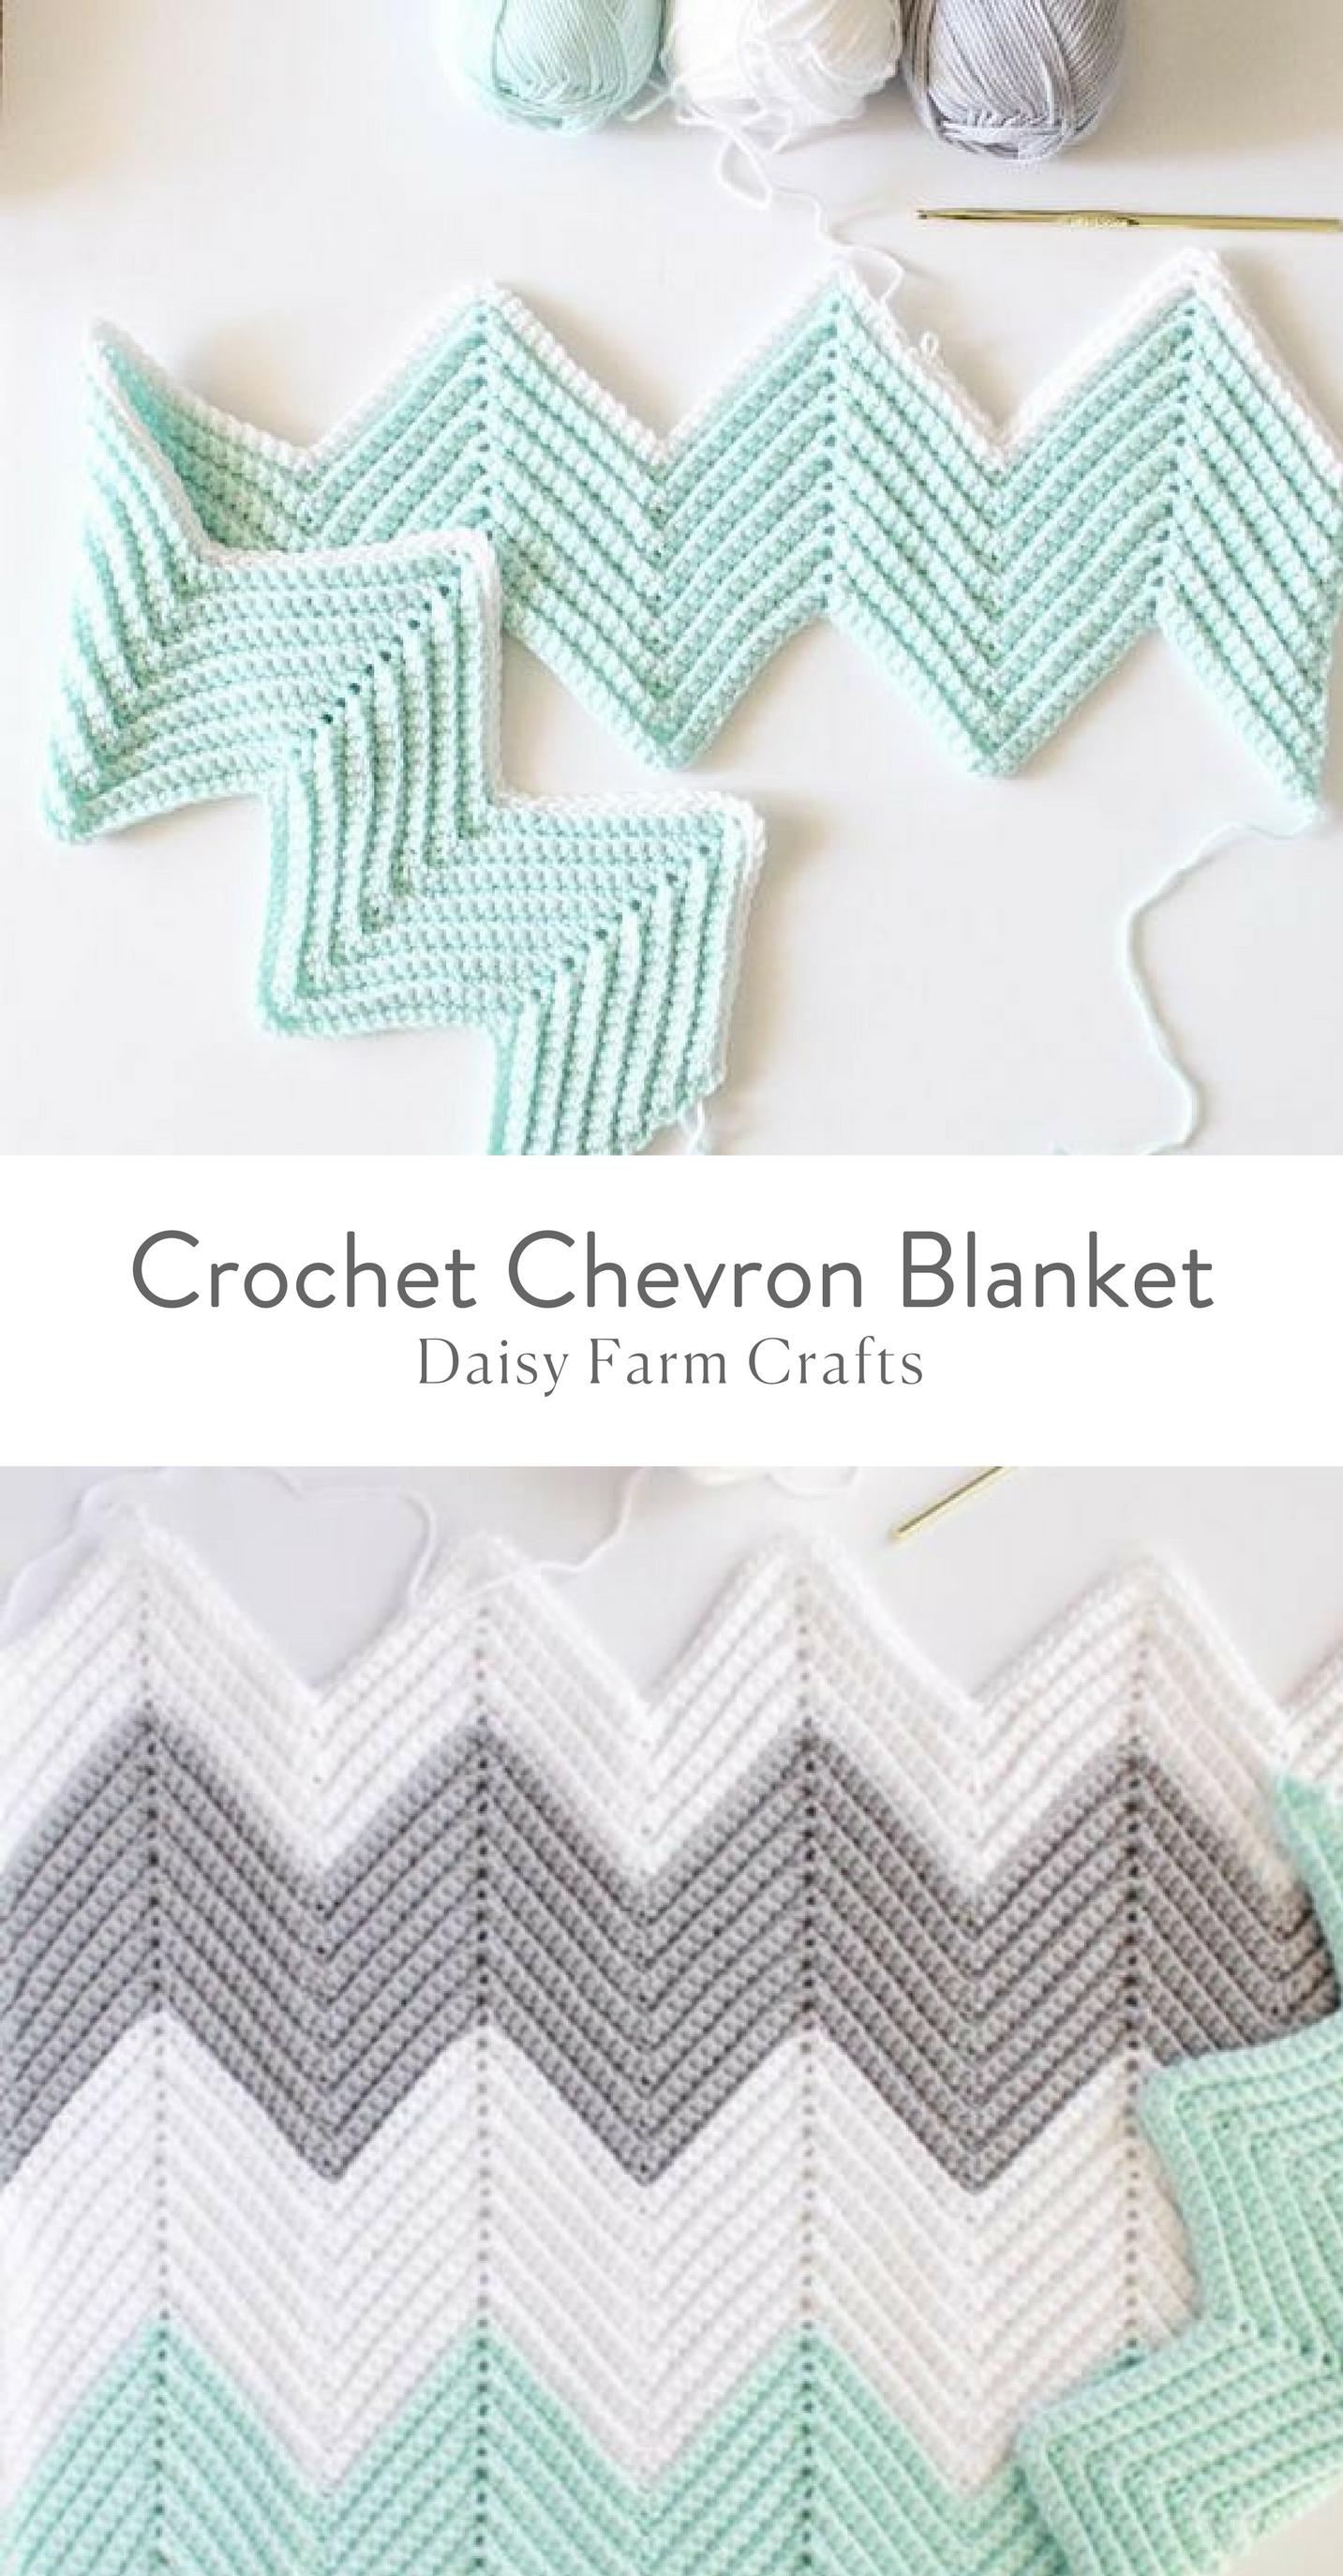 Free Pattern - Crochet Chevron Blanket | Crochet and Knit Wonders ...